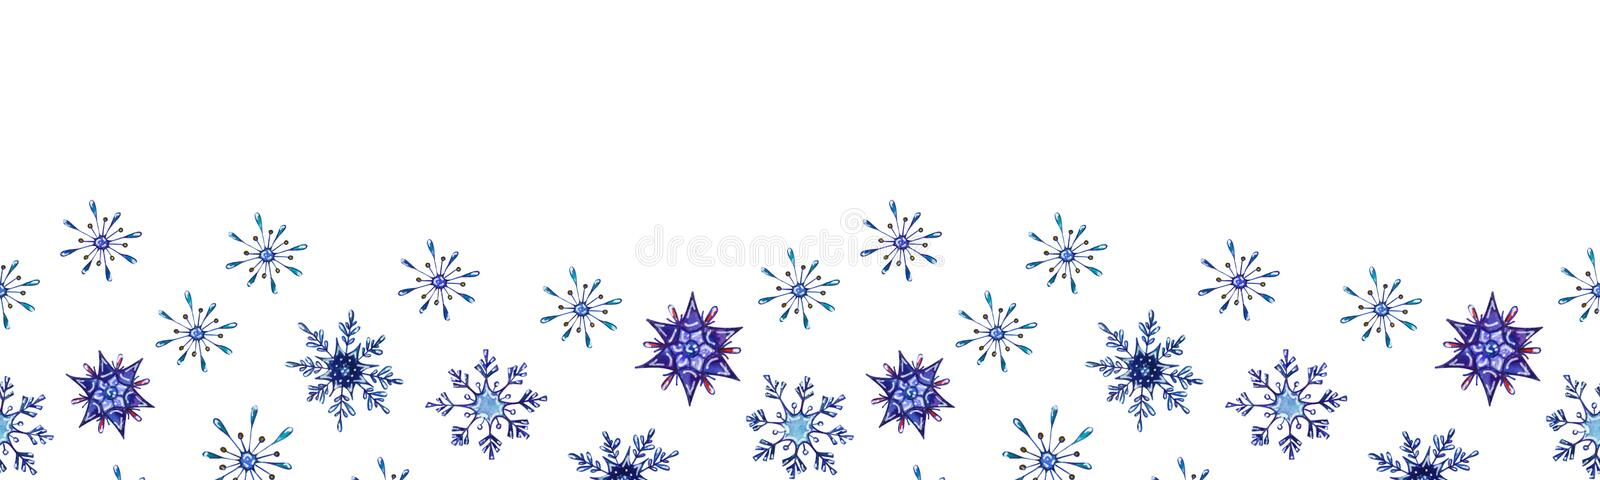 Hand painted Christmas watercolor snowflakes template. Decorative Snowflakes seamless banner isolated on white background. Perfect for card, invitation, web vector illustration